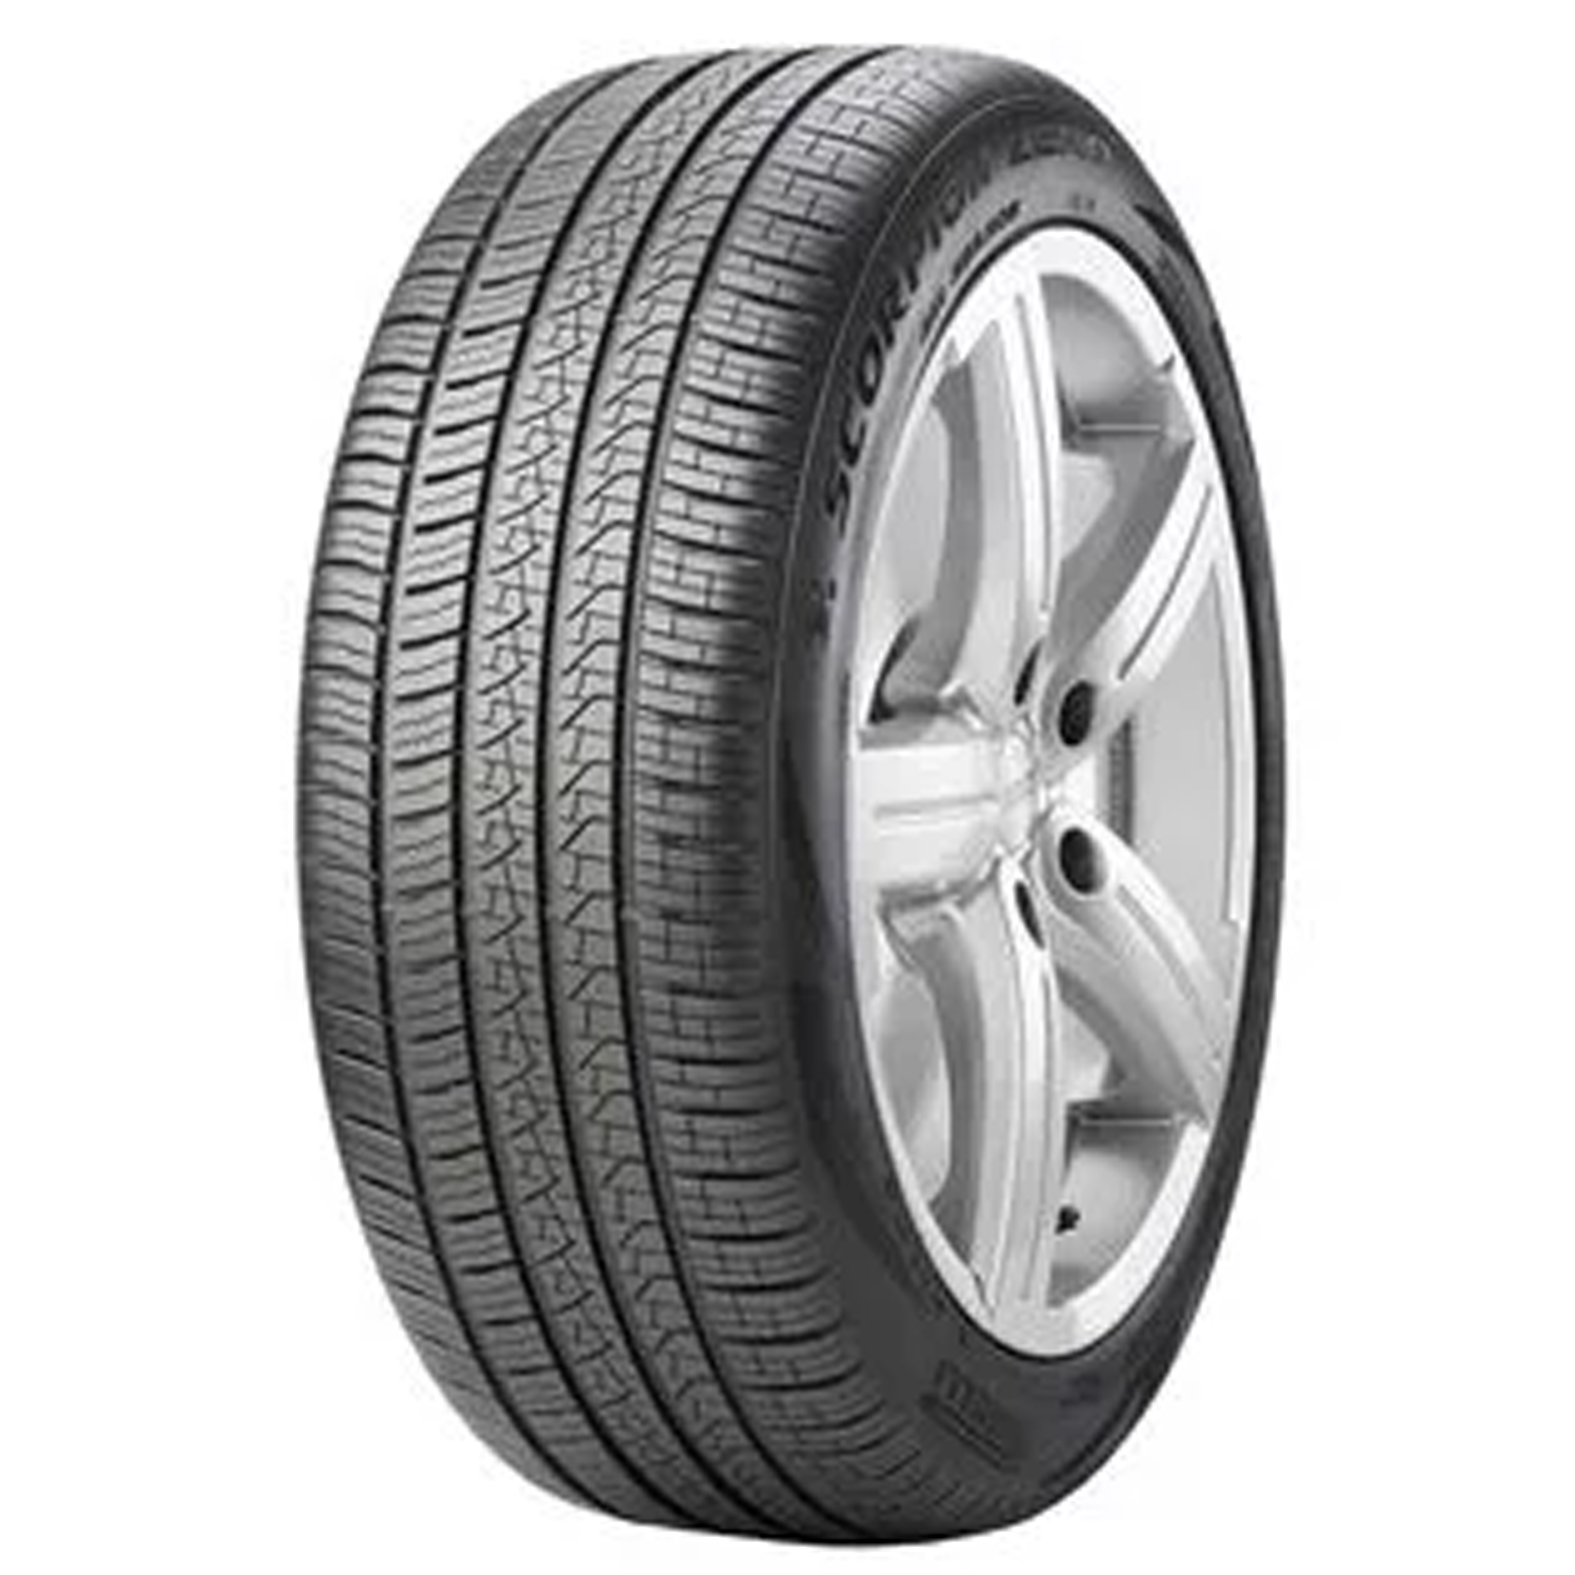 Pirelli Scorpion Zero All-Season tire - angle